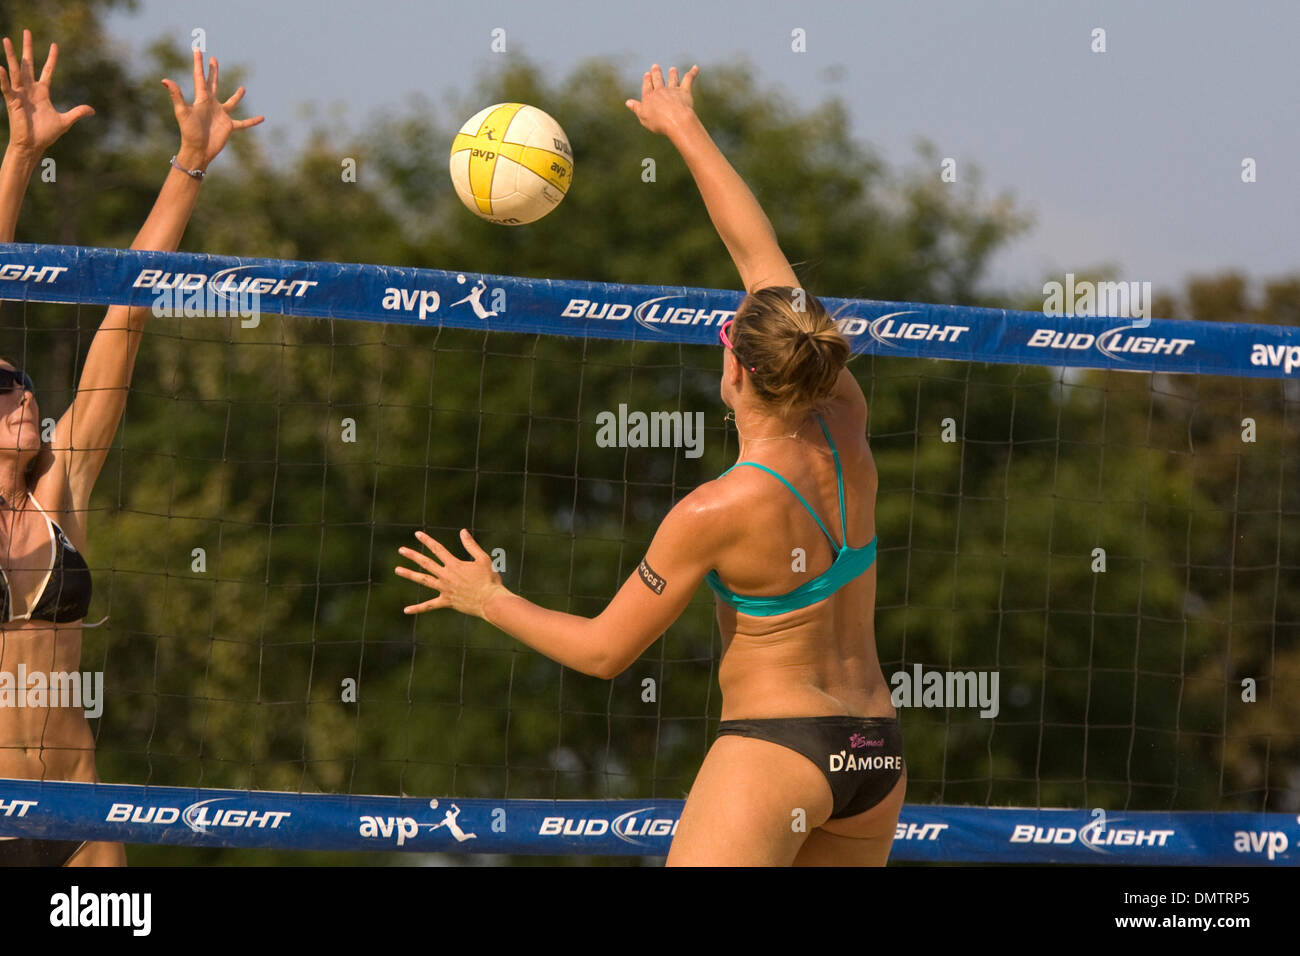 04 September 2009 Claire D Amore Competes During The 2009 Avp Crocs Stock Photo Alamy